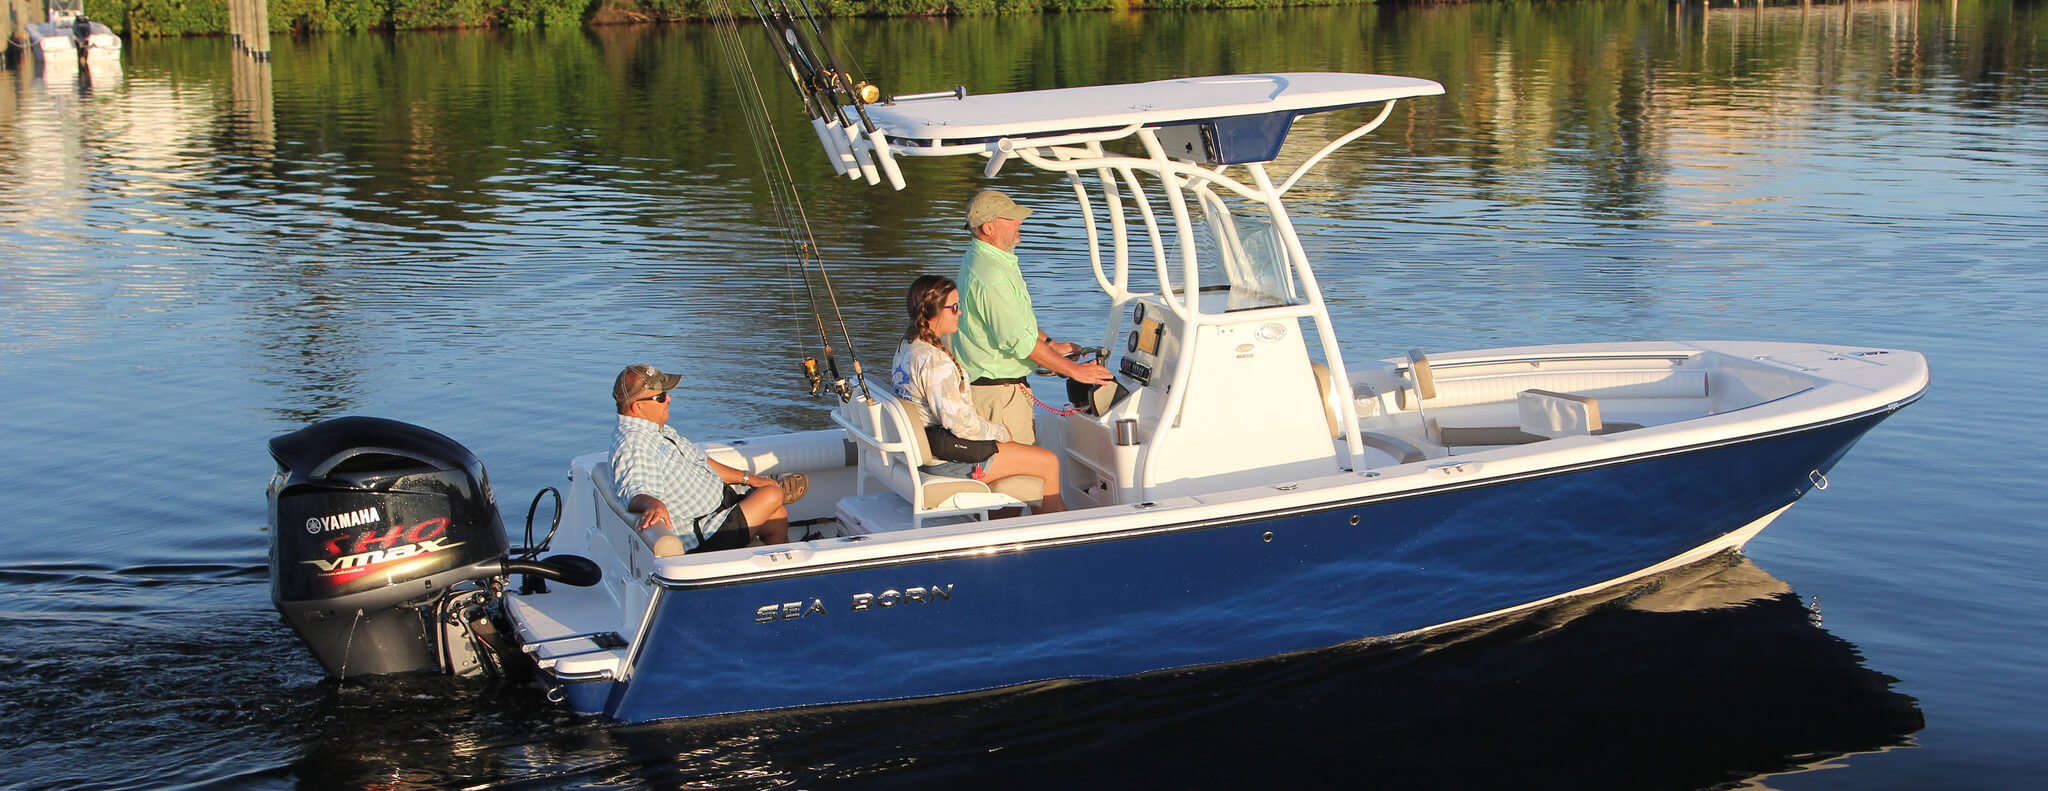 Shop sea born boats for sale in stuart best fishing boats for Fishing boat brands